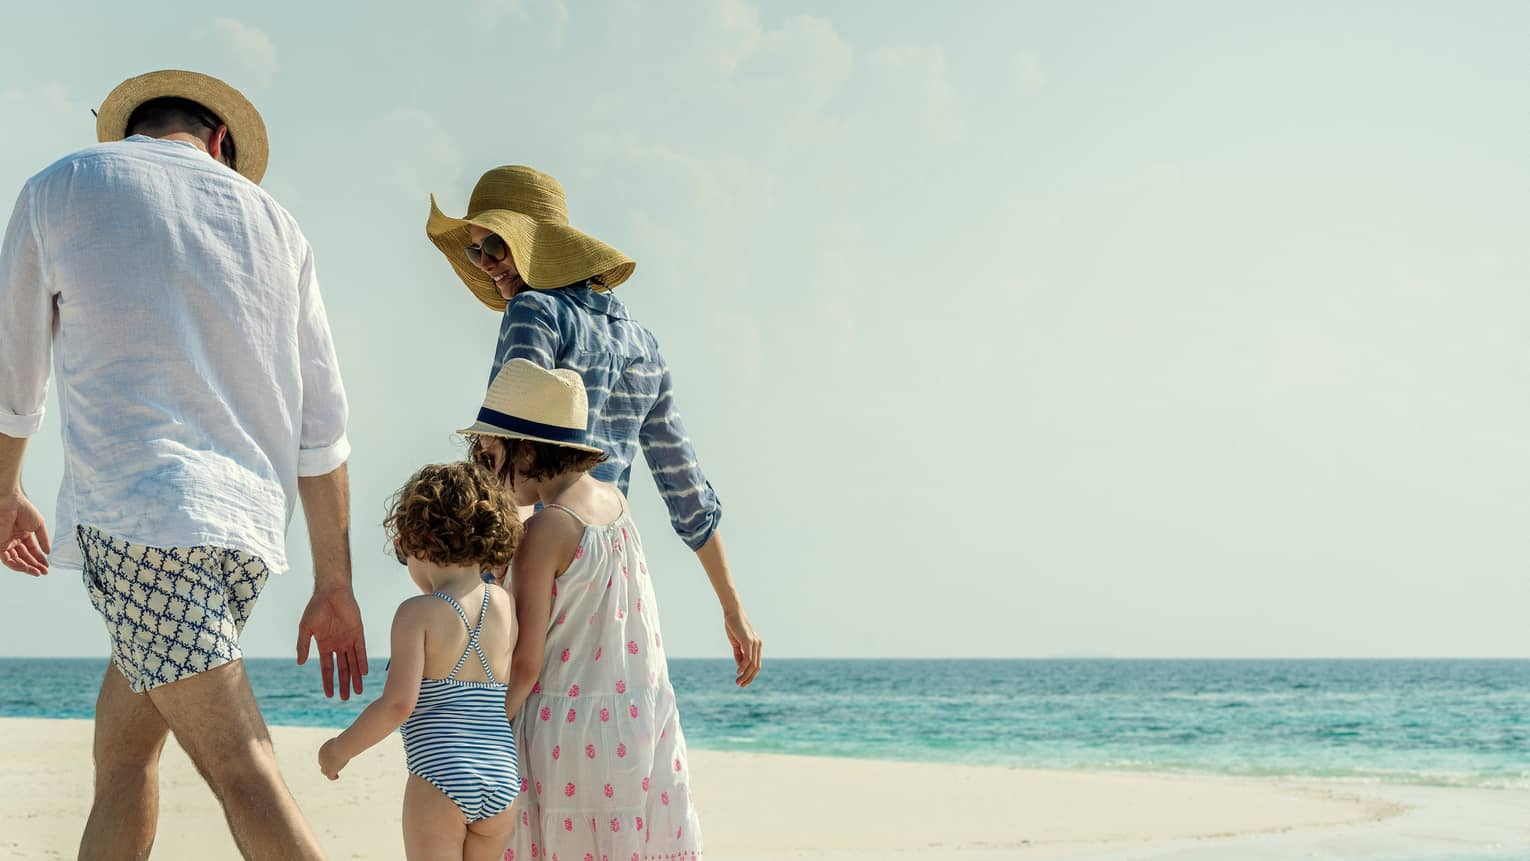 Family wearing swimsuits, sundresses and sun hats walk along white sand beach